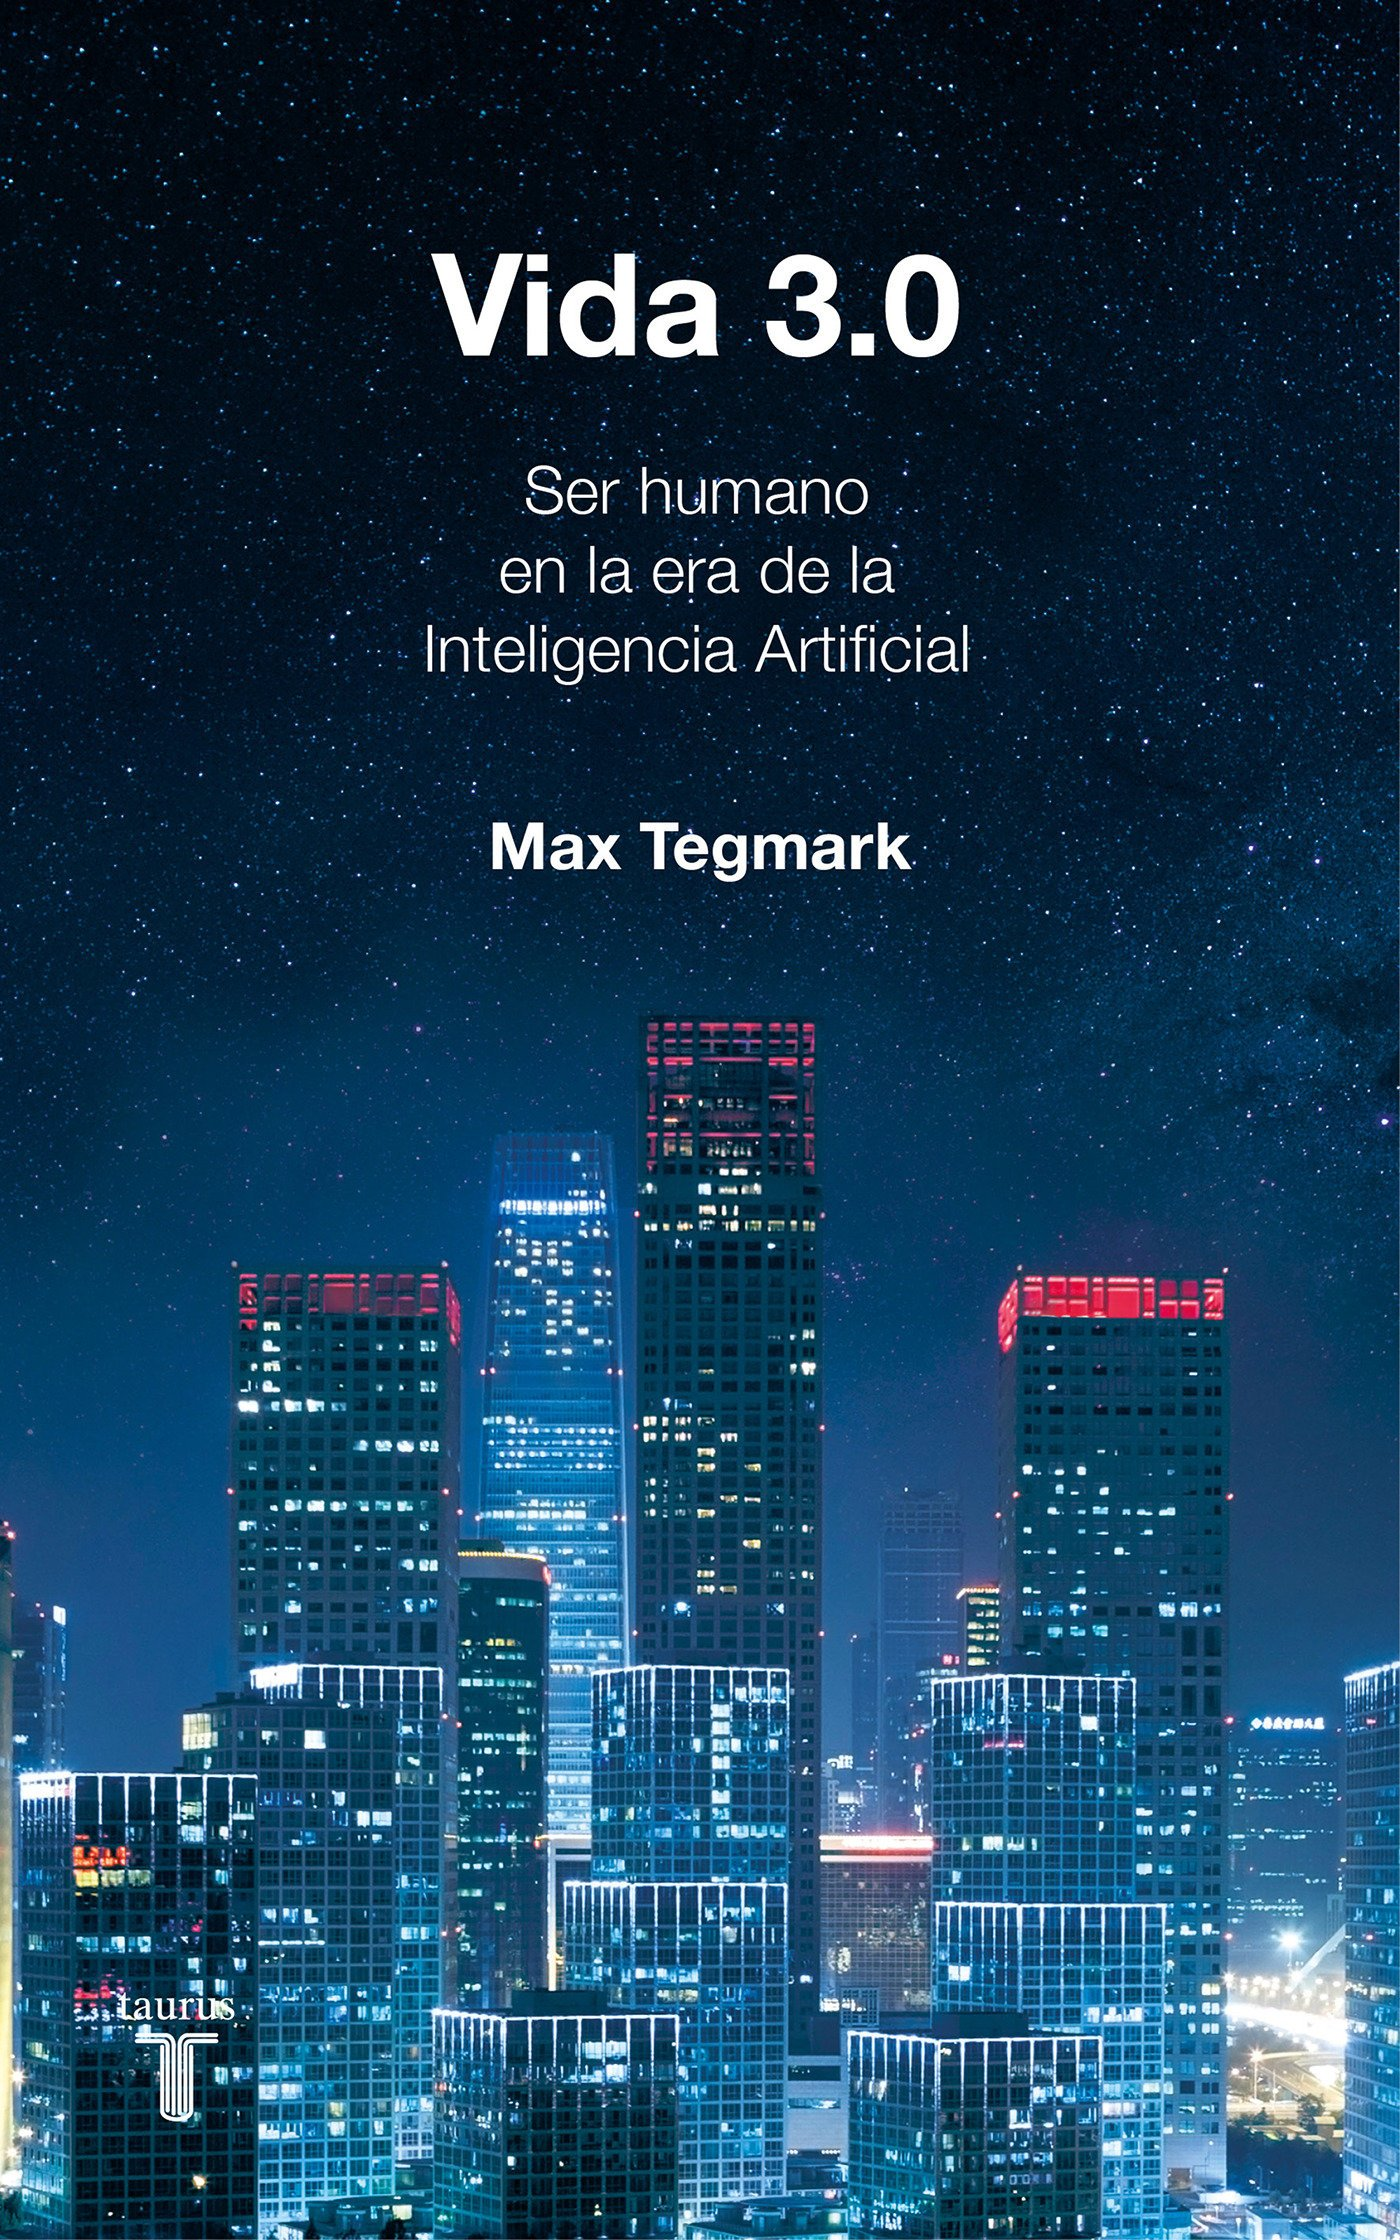 Vida 3.0/Life 3.0: Being Human in the Age of Artificial Intelligence (Spanish Edition)